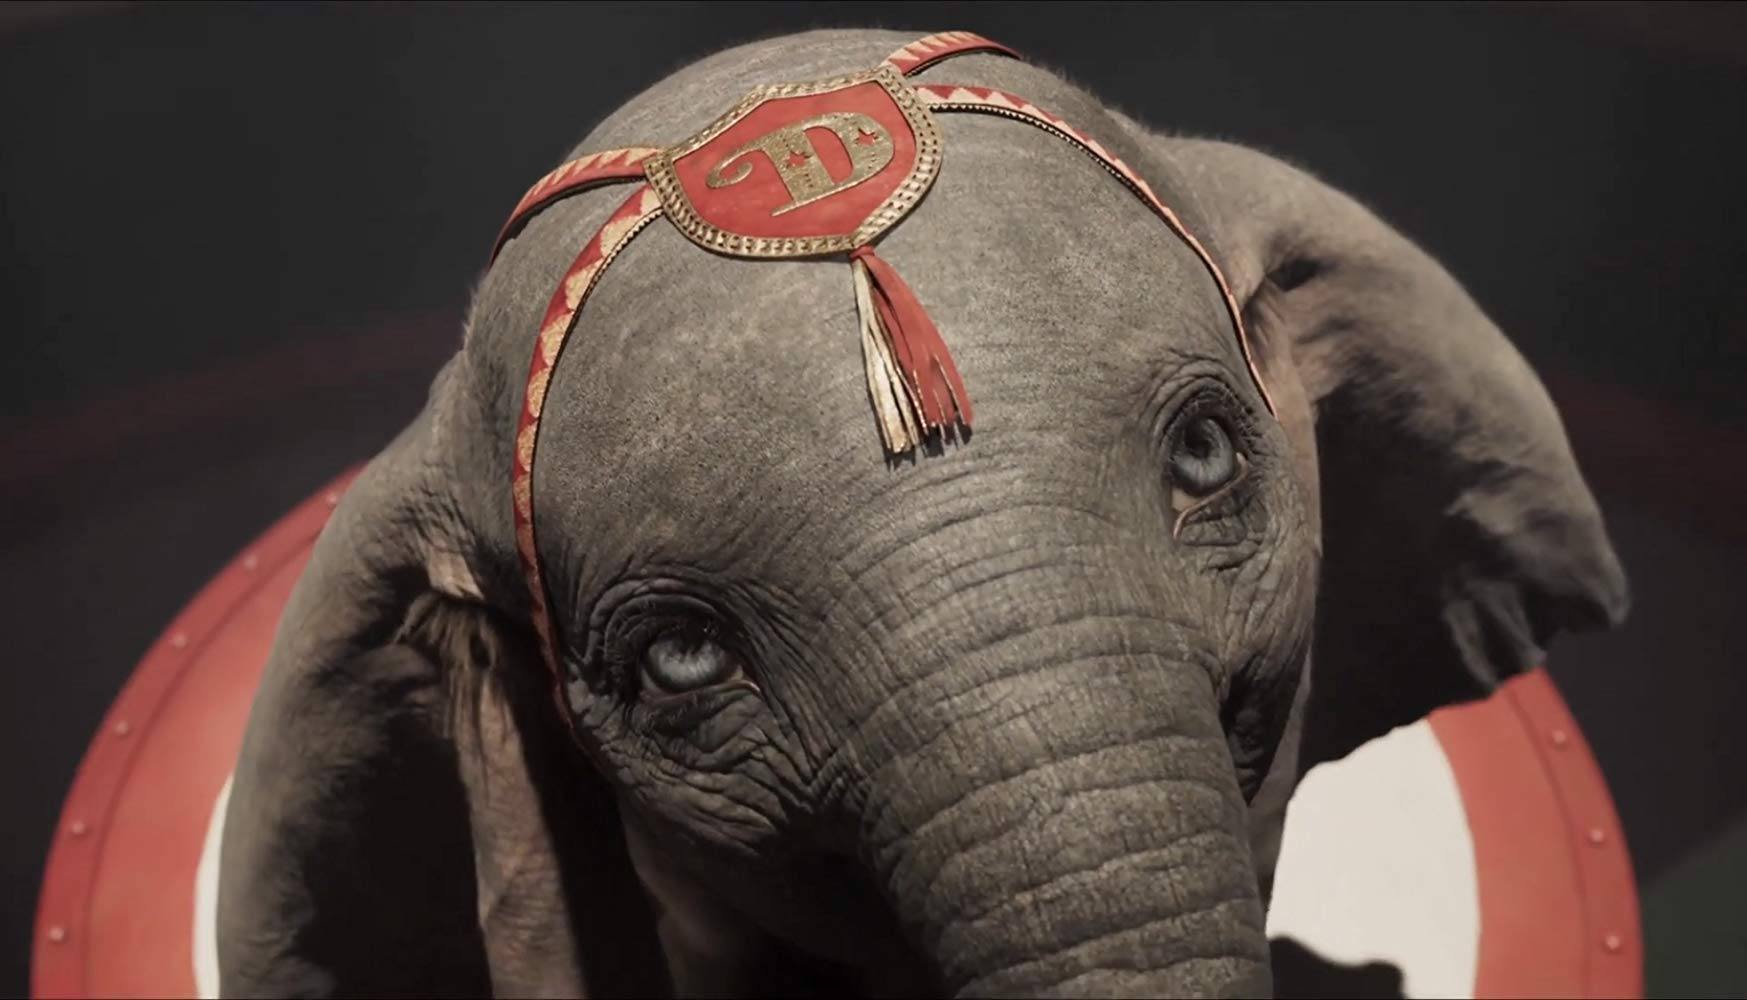 Dumbo 2019 Movie Review I Can T Unsee That Movie Film News And Reviews By Jeff Huston